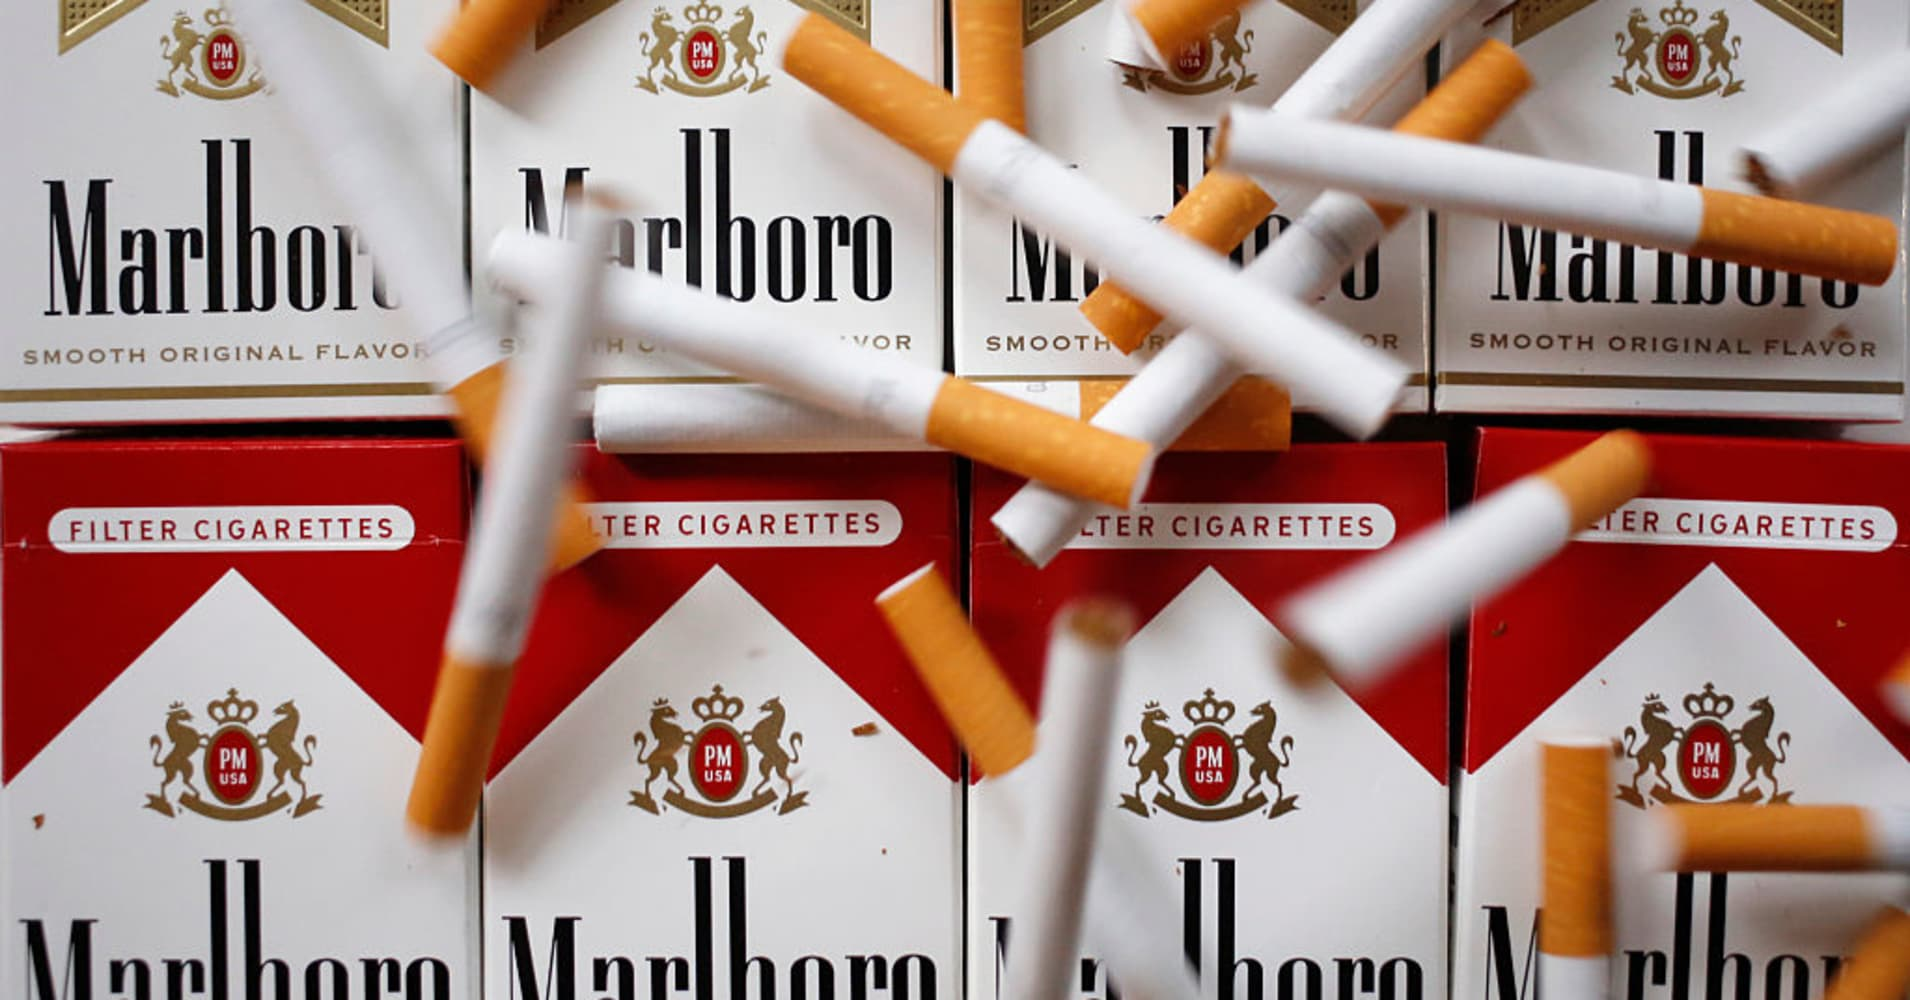 Philip Morris CEO looks toward phasing out cigarettes